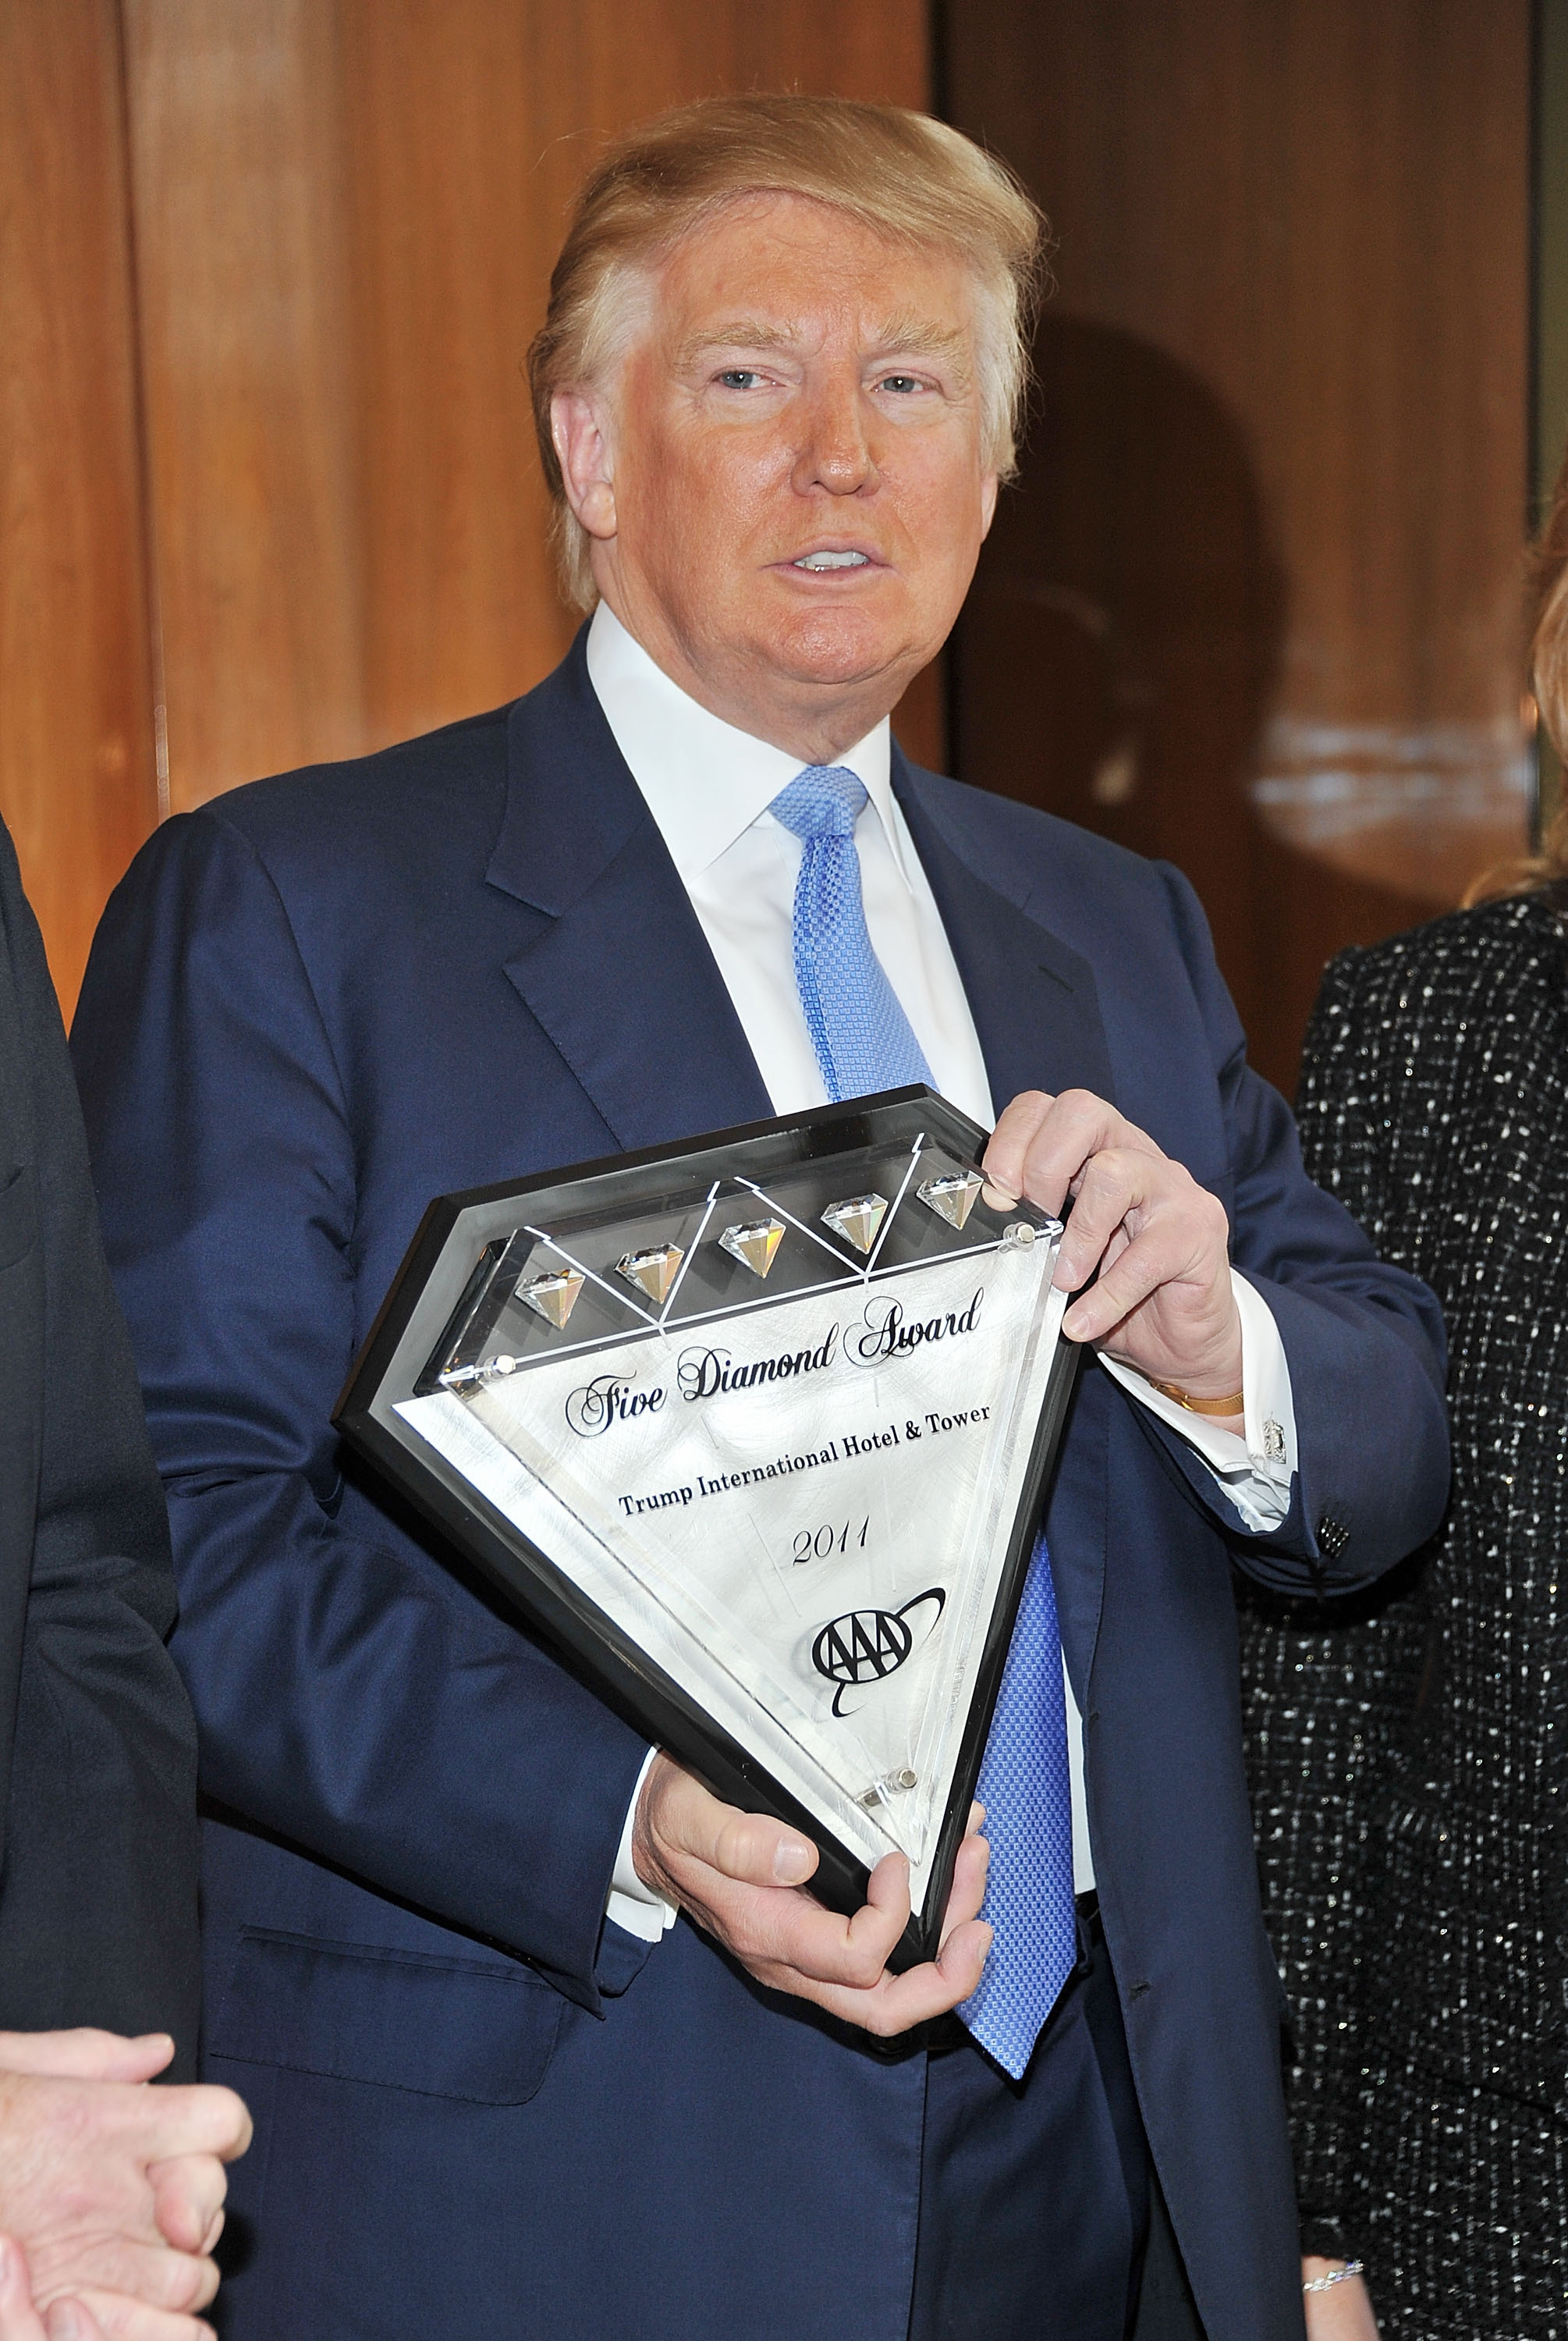 Donald Trump Receives AAA Five Diamonds for Trump Central Park at Trump International Hotel & Tower New York on March 31, 2011, in New York City. (Getty Images)